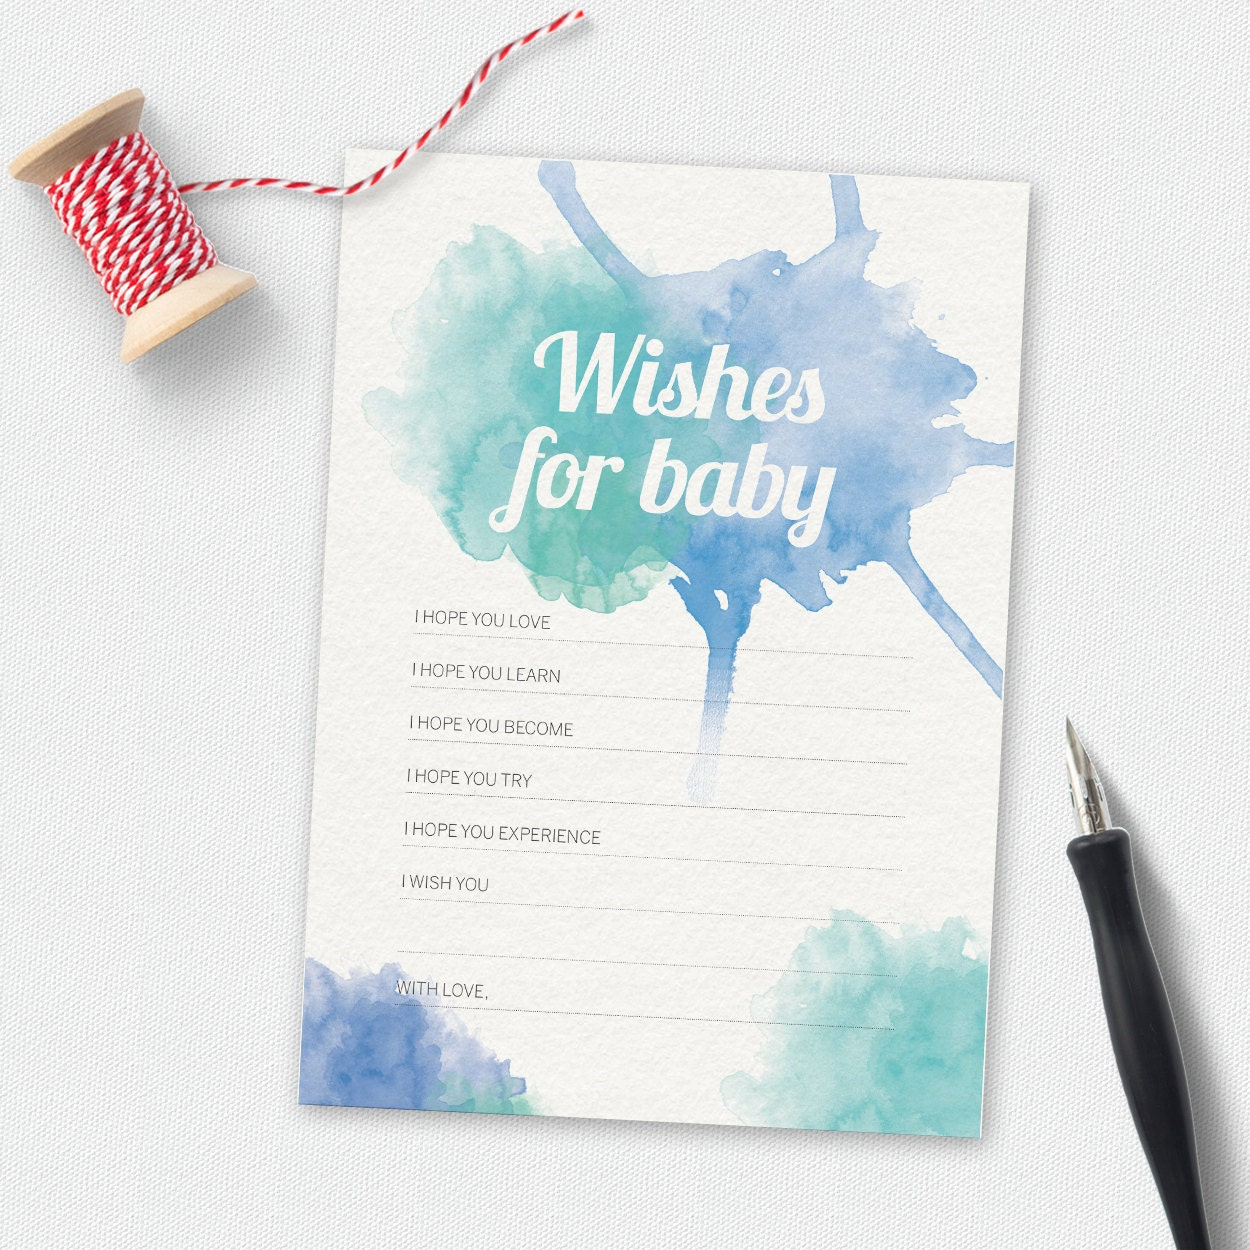 Printable Wishes for baby baby shower wishes babyshower | Etsy